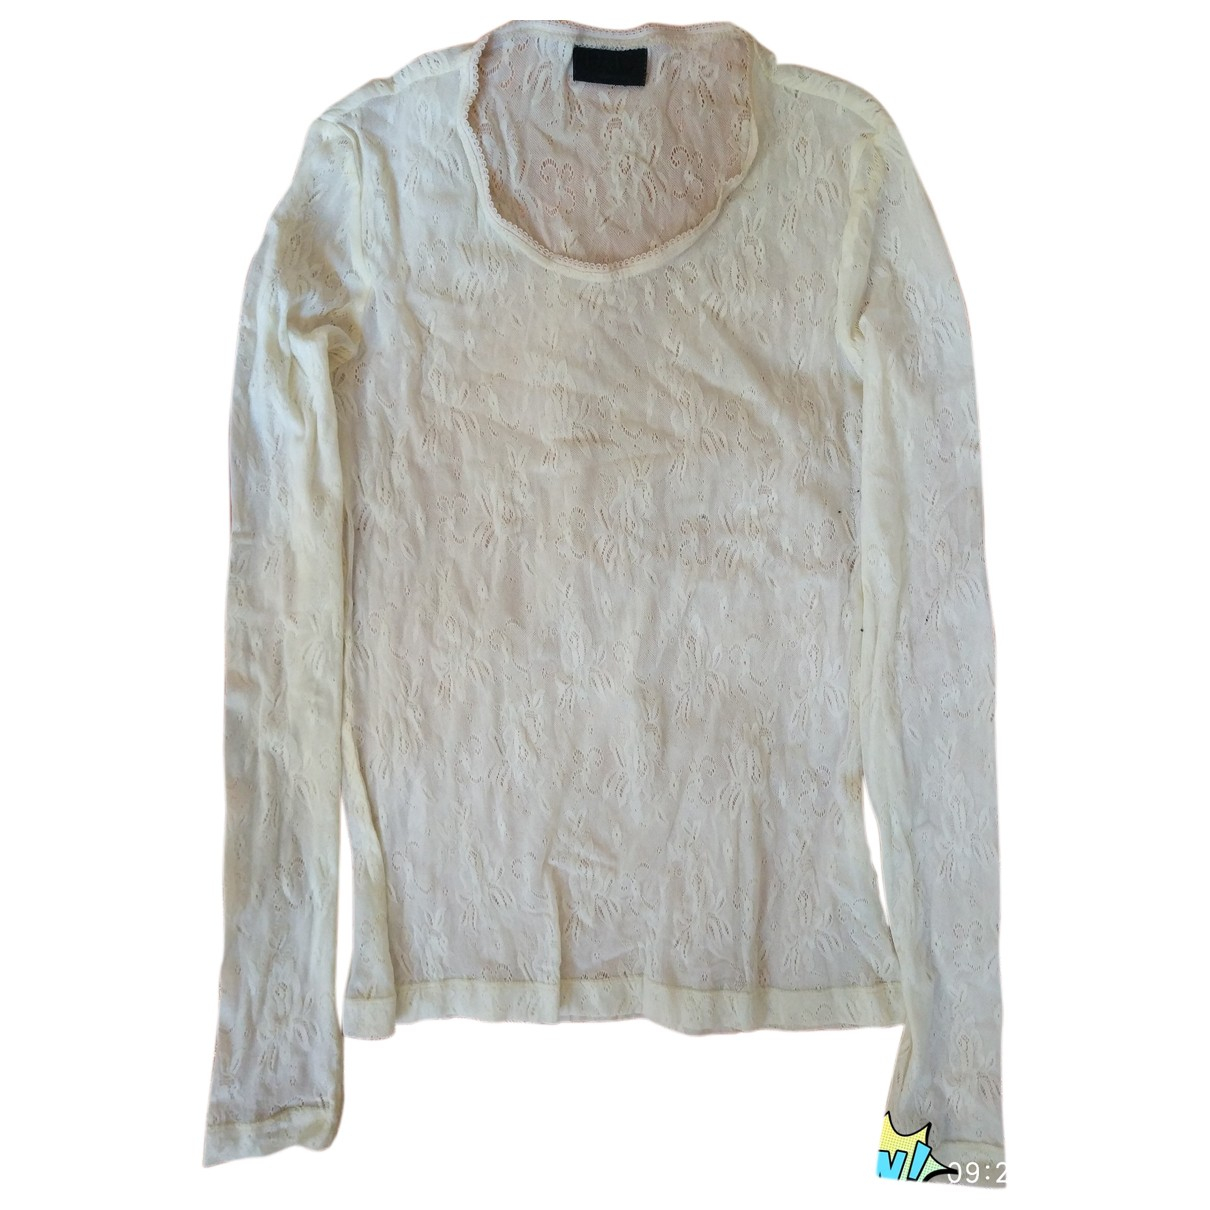 D&g N White  top for Women One Size IT